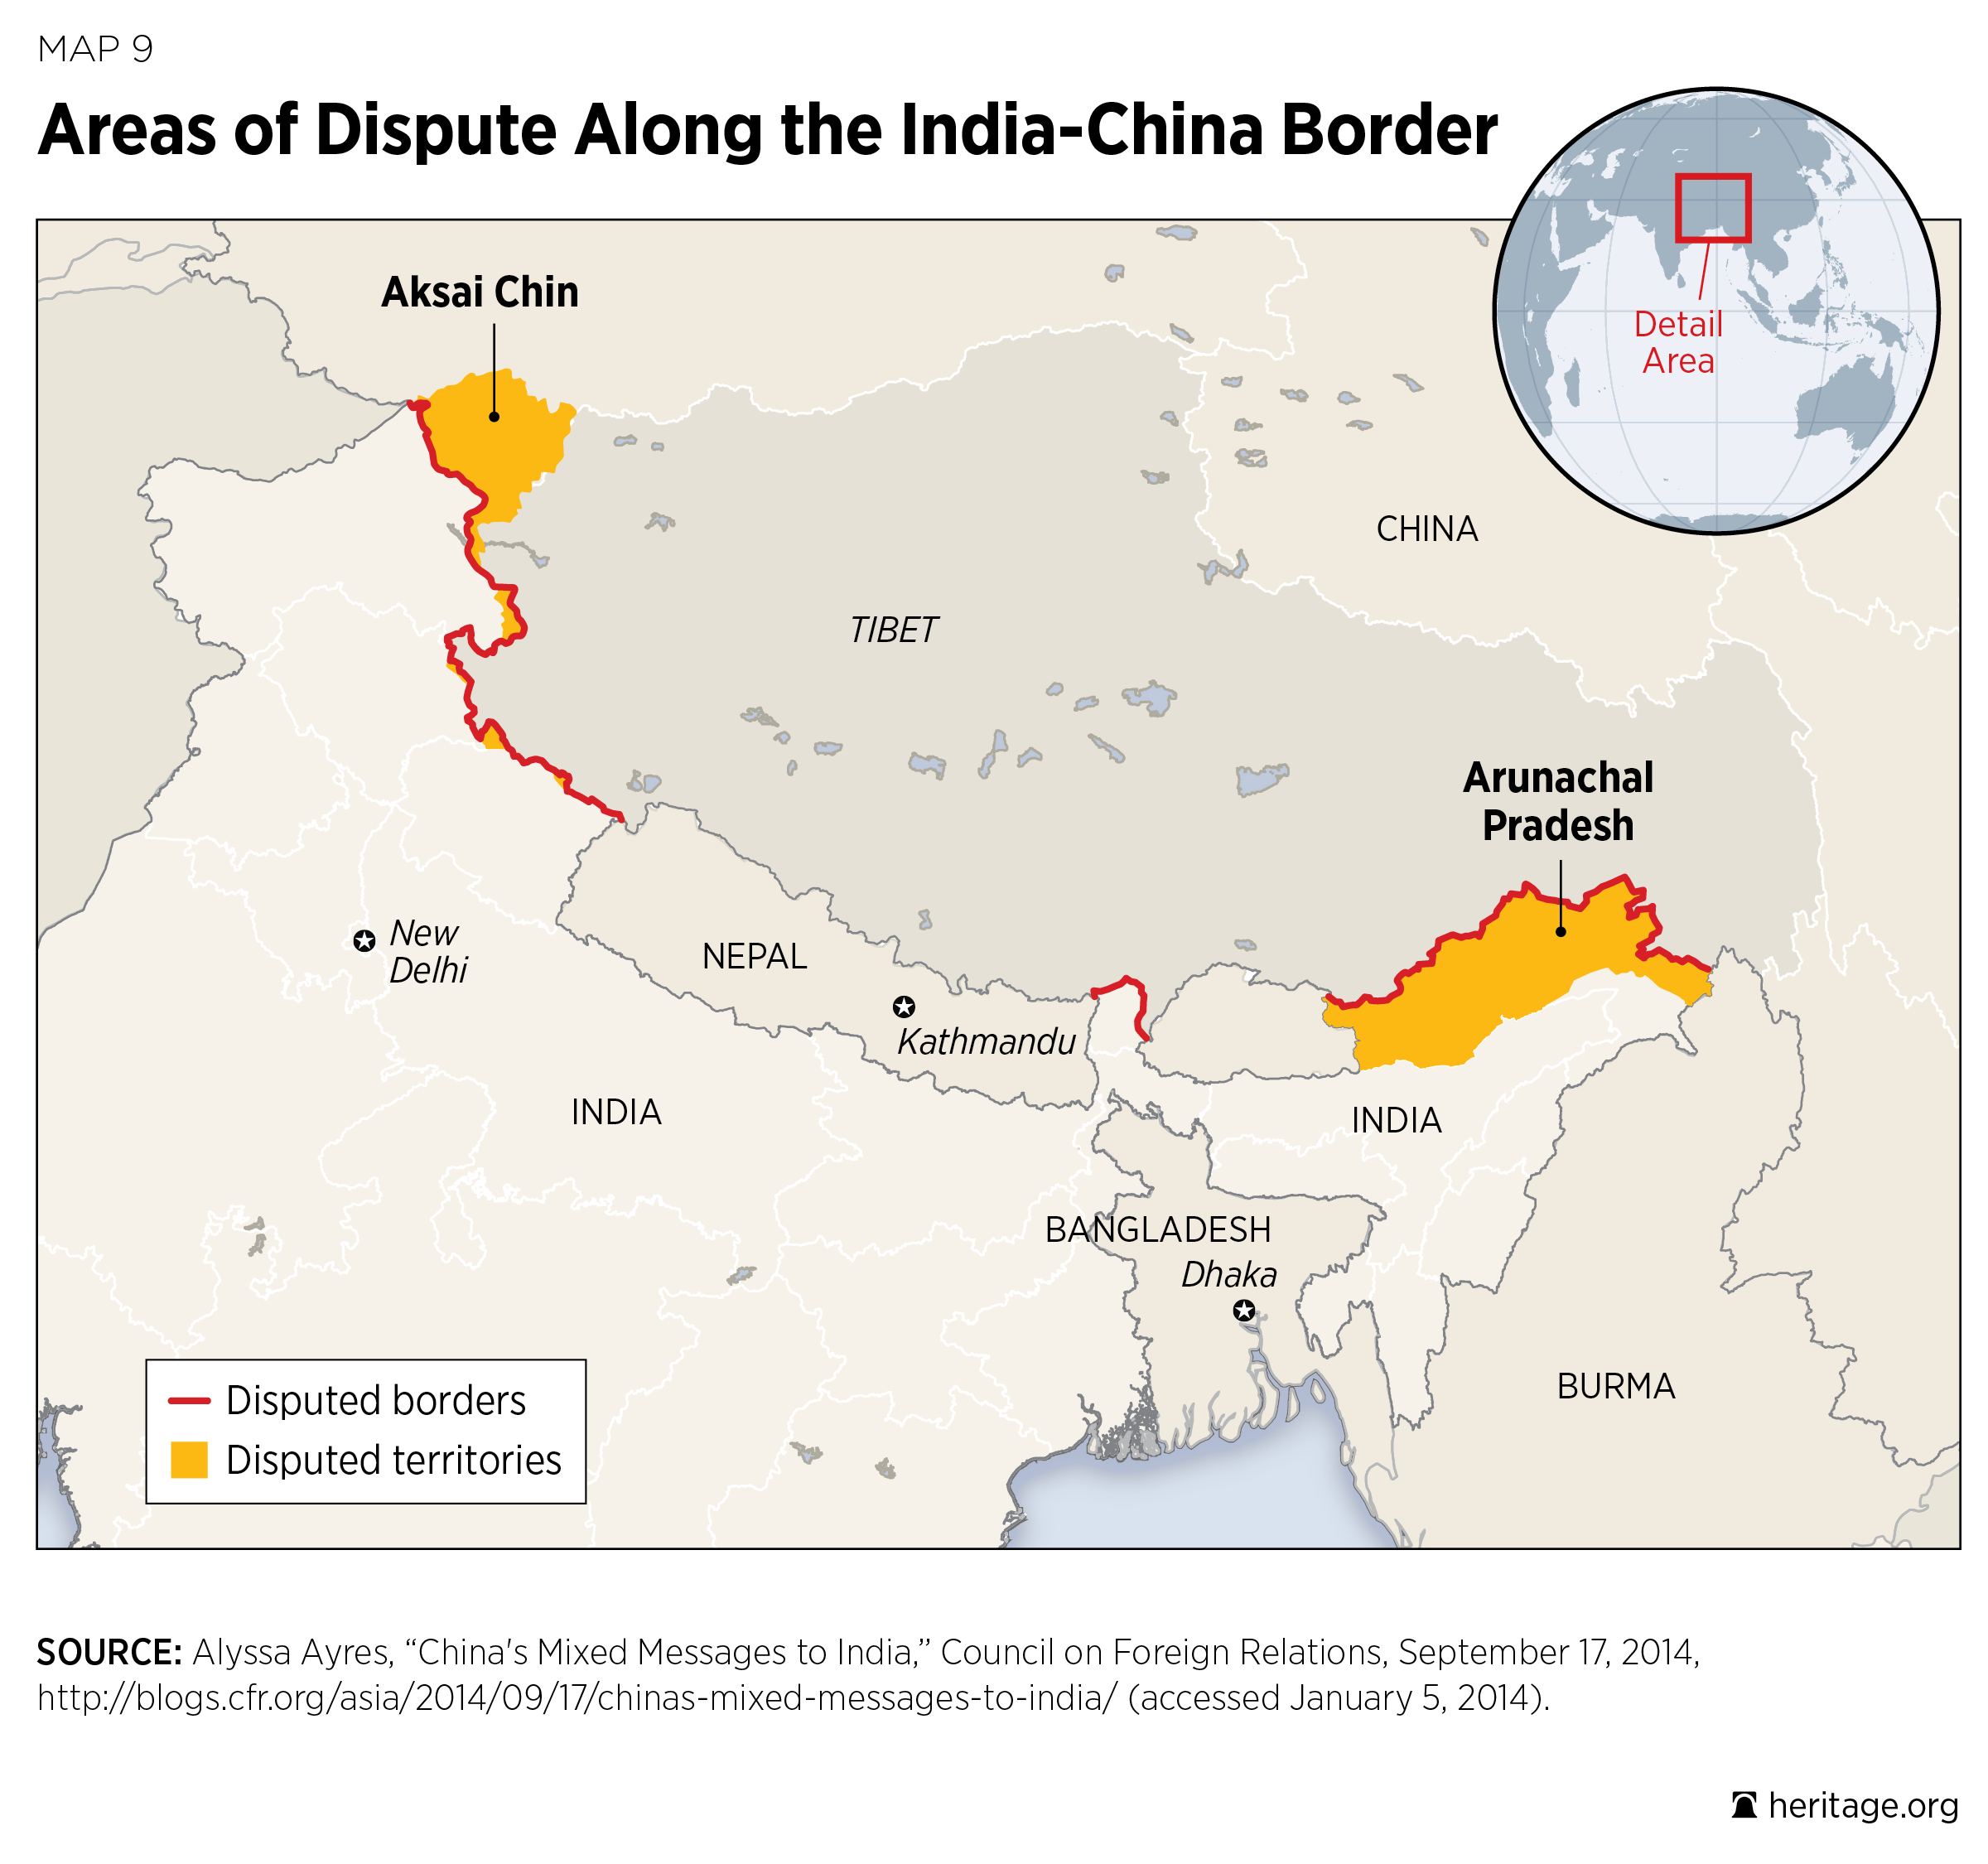 Areas of Dispute Along the India-China Border